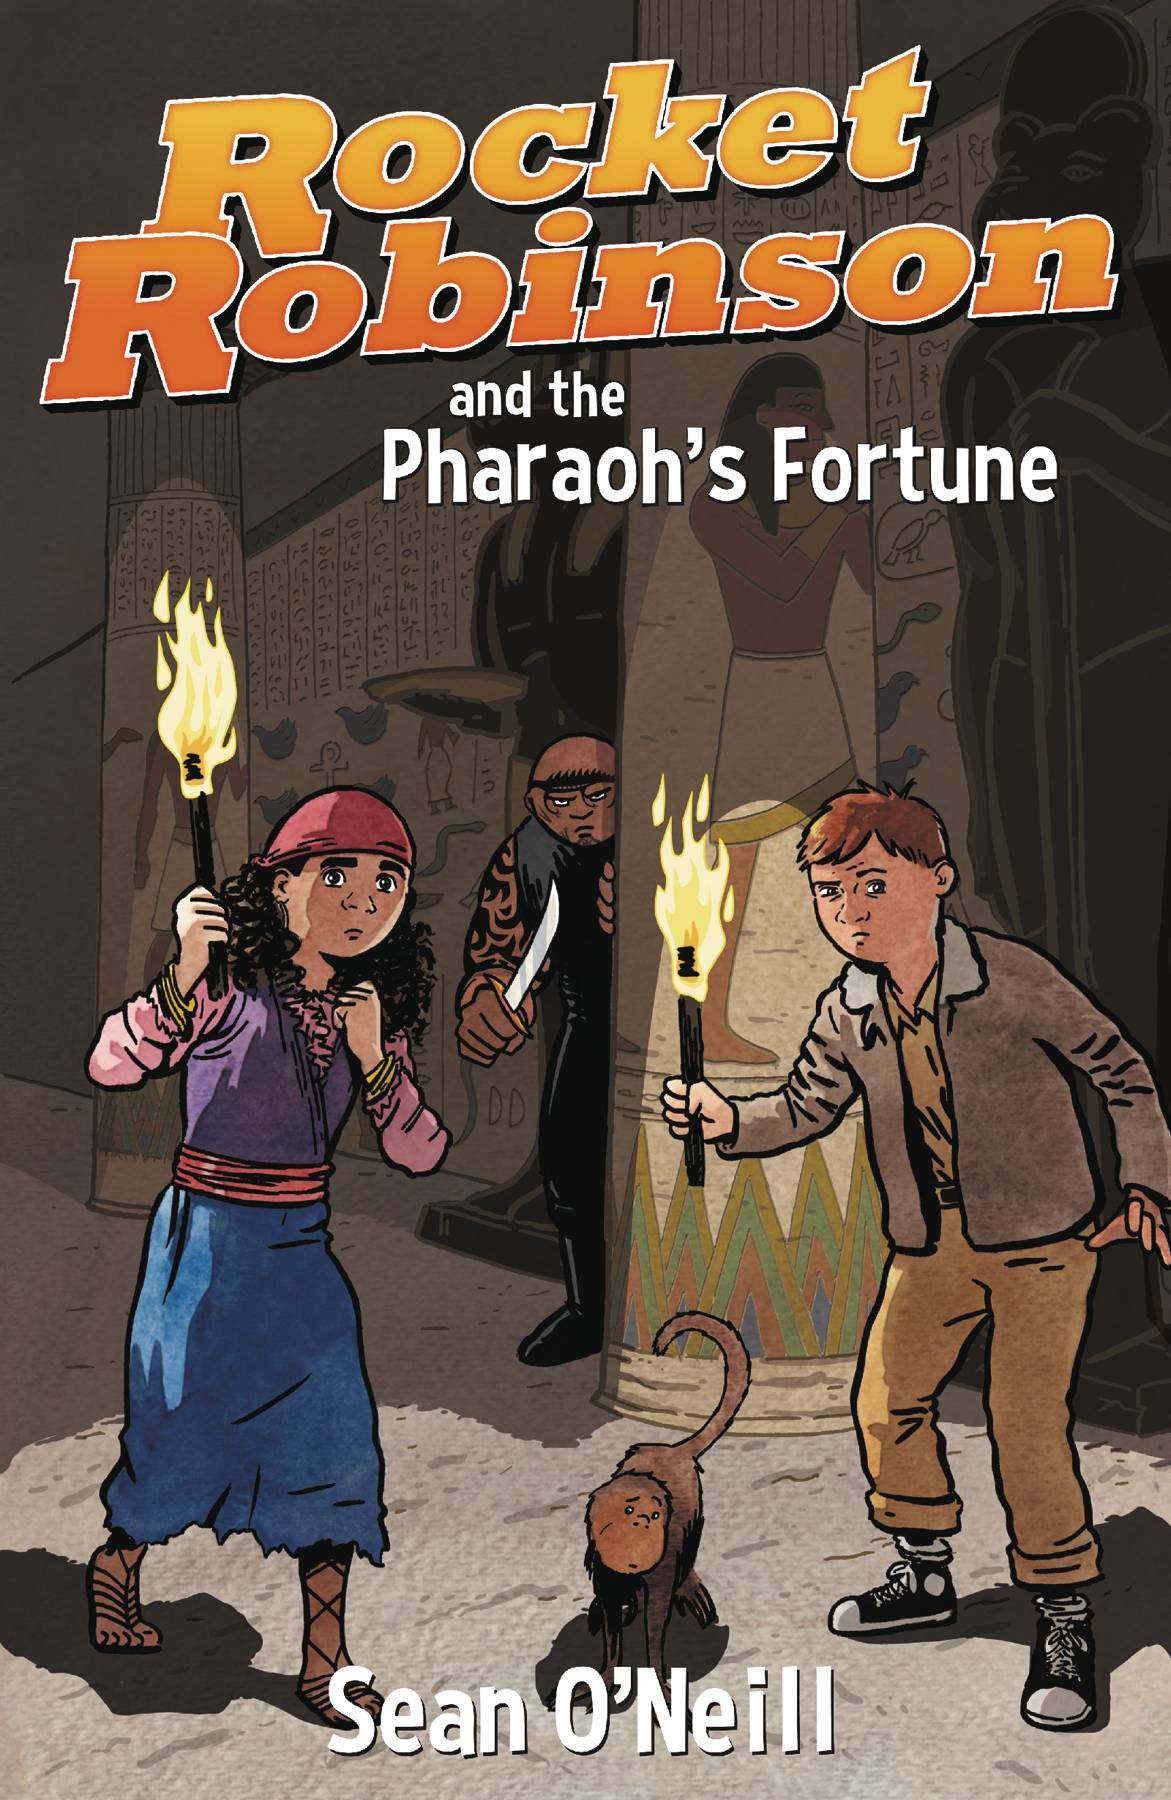 ROCKET ROBINSON & PHAROAHS FORTUNE GN VOL 01